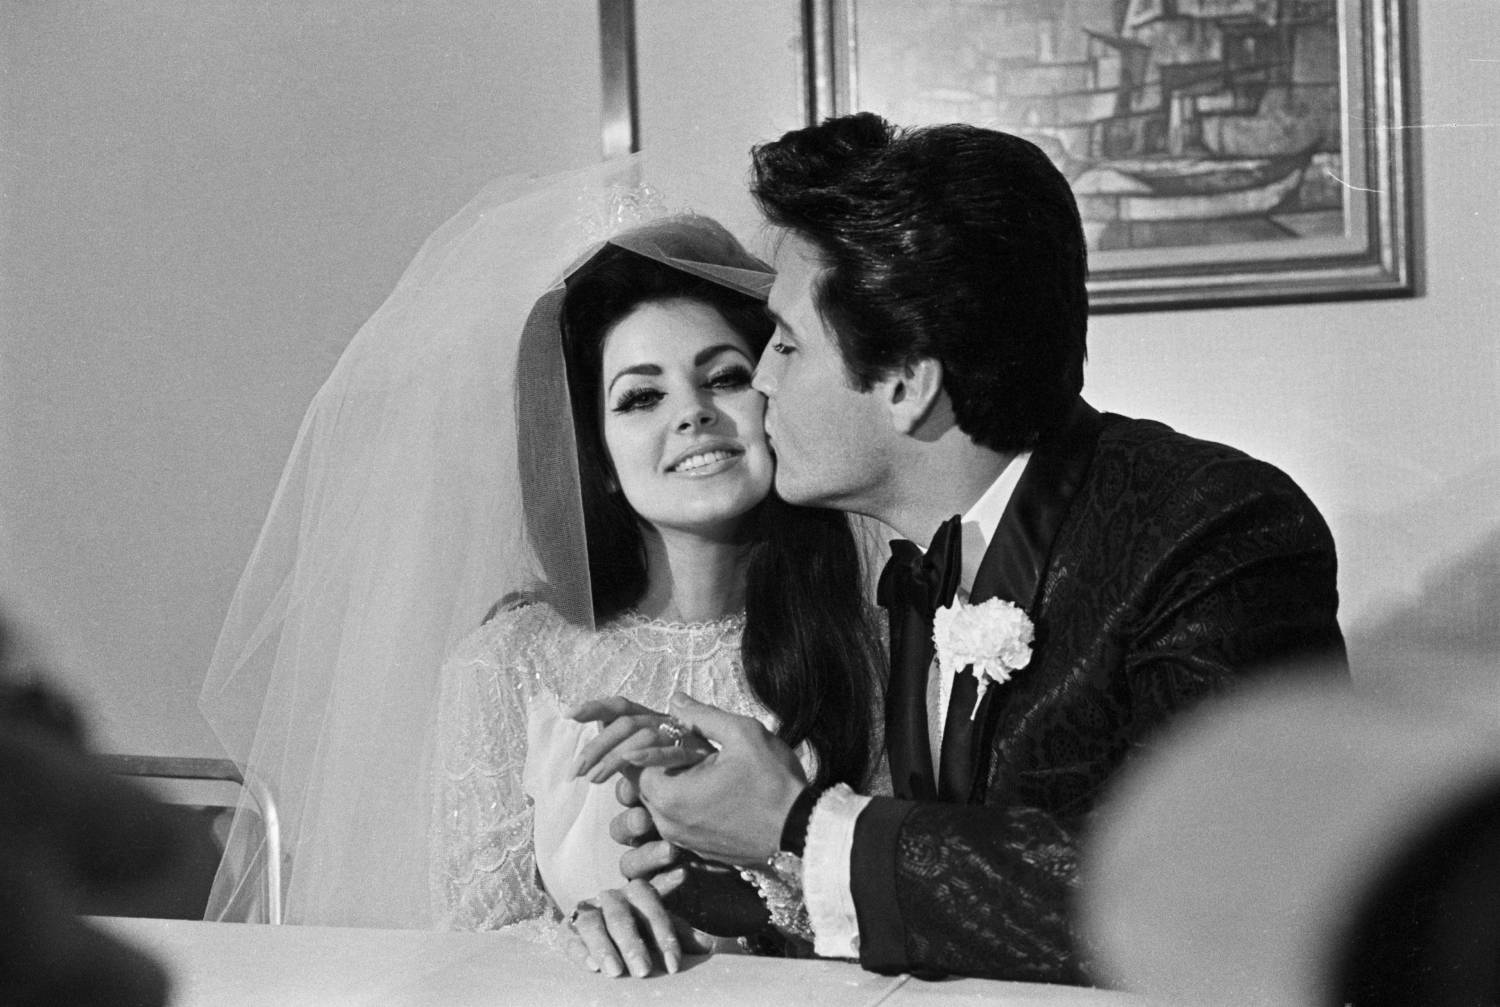 Las Vegas, NV: Elvis Presley will kiss his new bride, Priscilla Ann Beaulieu after their wedding.  The bride wears a large diamond on her finger.